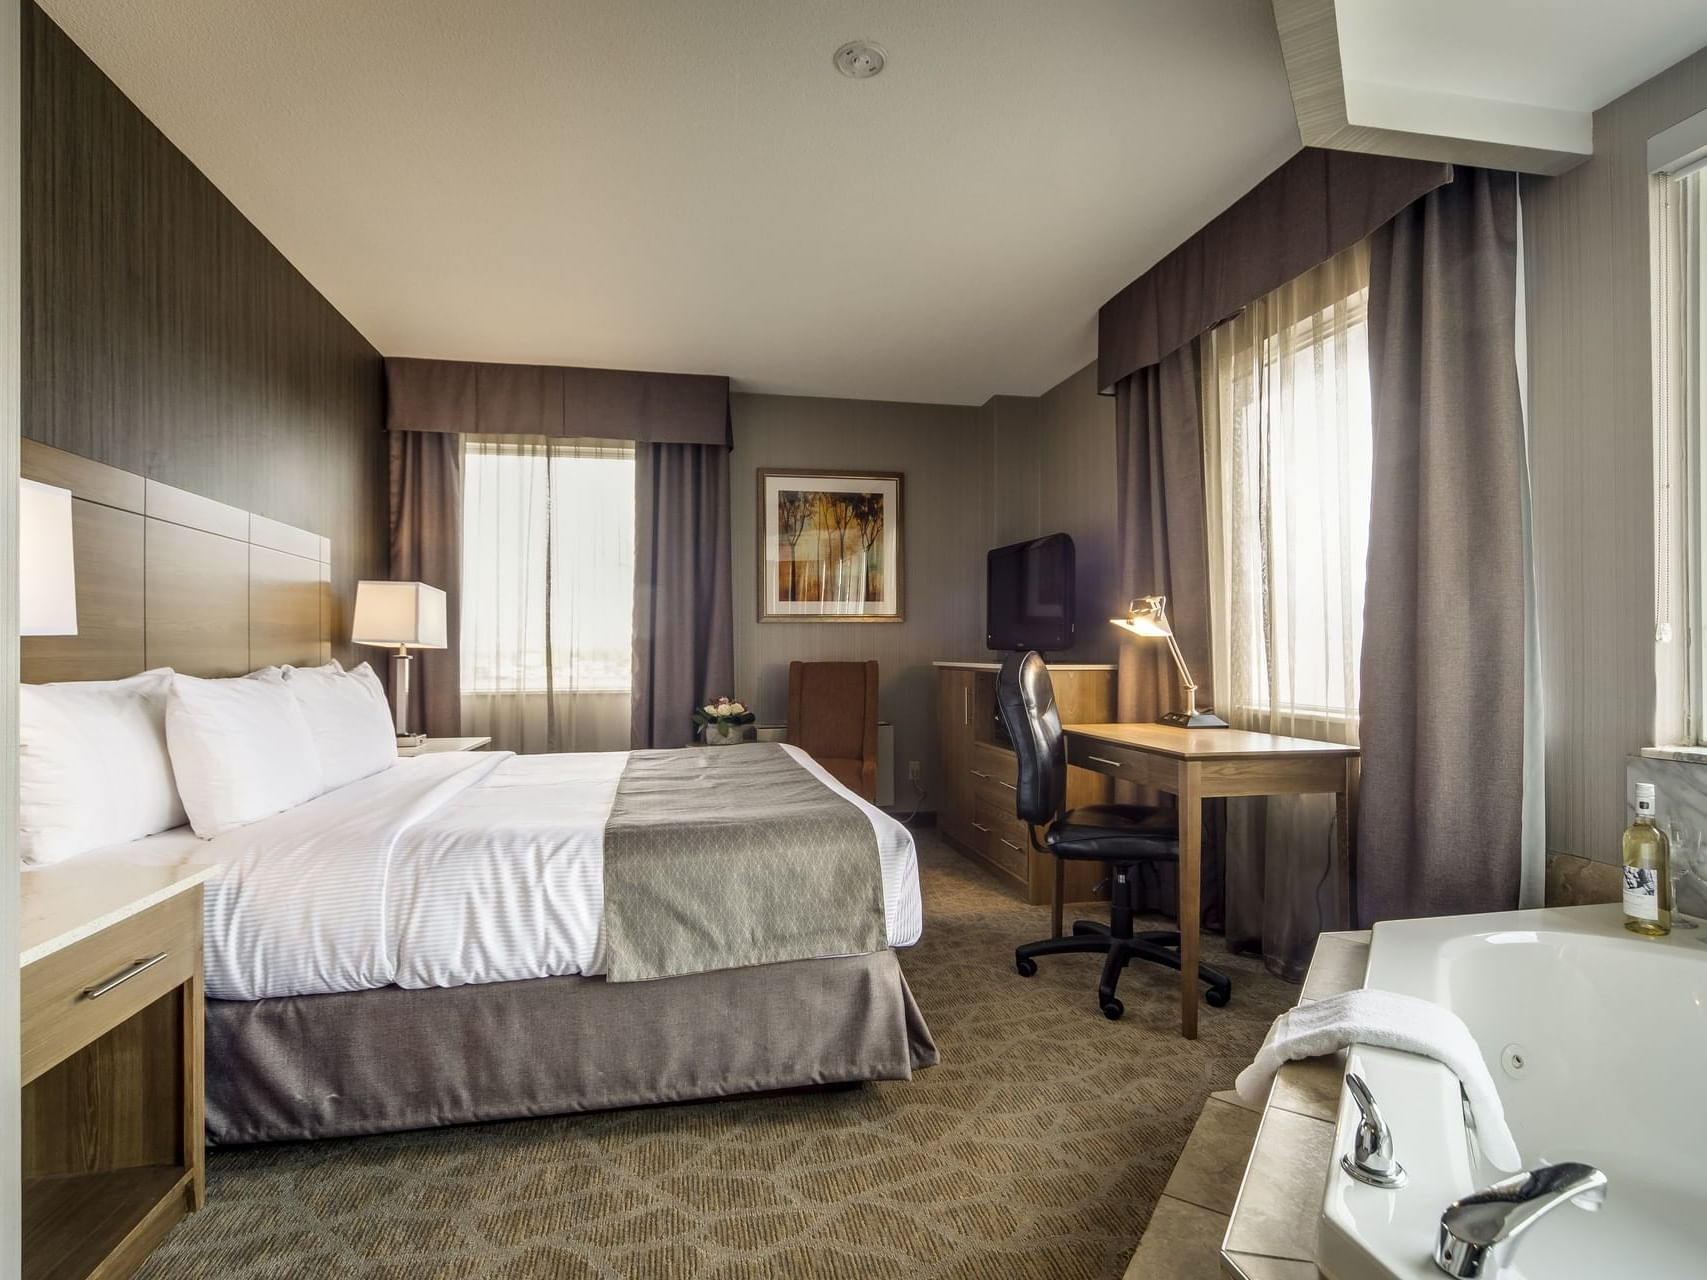 Double bed, Jacuzzi, working table and chair - Monte Carlo Inn Airport Suites